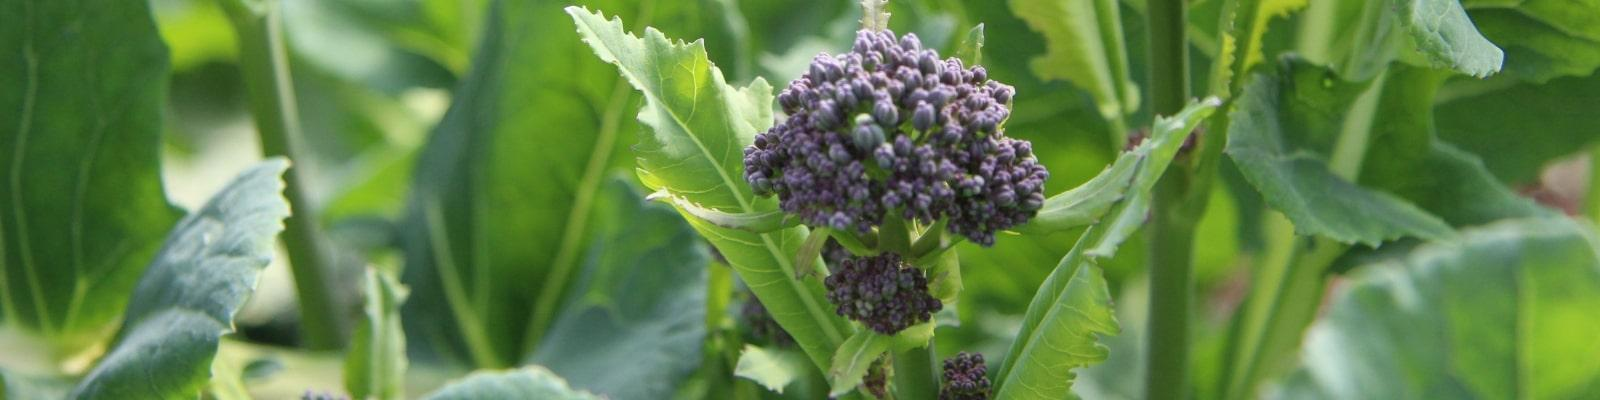 https://www.airfield.ie/wp-content/uploads/2019/02/Purple-Sprouting-Broccoli-at-Airfield-Estate-min.jpg